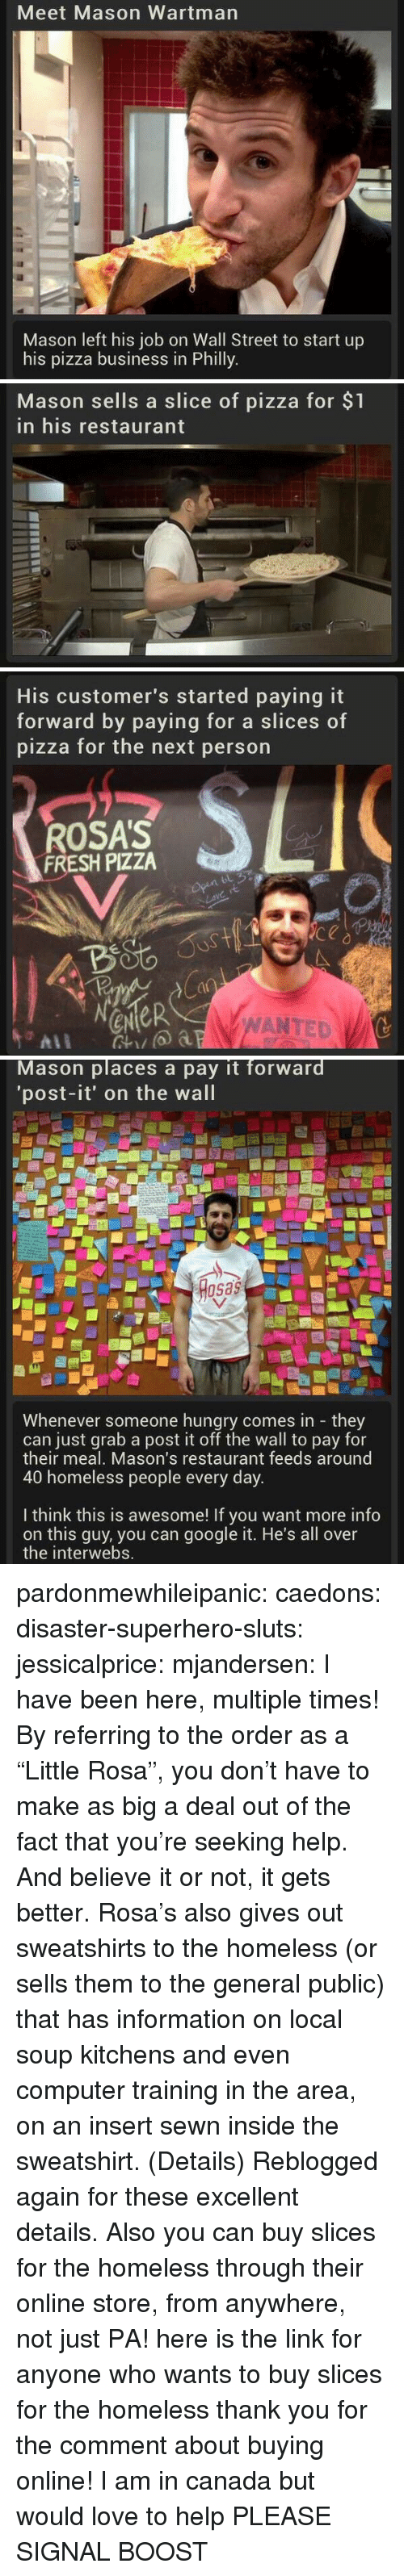 """Rosa: Meet Mason Wartman  Mason left his job on Wall Street to start up  his pizza business in Philly   Mason sells a slice of pizza for $1  in his restaurant   His customer's started paying it  forward by paying for a slice  pizza for the next person  s of  ROSA'S  FRESH PIZZA  4o  a0  eNeR  WANTED   Mason places a pay it forward  'post-it' on the wall  osas  Whenever someone hungry comes in they  can just grab a post it off the wall to pay for  their meal, Mason's restaurant feeds around  40 homeless people every day  I think this is awesome! If you want more info  on this guy, you can google it. He's all over  the interwebs. pardonmewhileipanic: caedons:  disaster-superhero-sluts:  jessicalprice:  mjandersen:  I have been here, multiple times!  By referring to the order as a """"Little Rosa"""", you don't have to make as big a deal out of the fact that you're seeking help. And believe it or not, it gets better. Rosa's also gives out sweatshirts to the homeless (or sells them to the general public) that has information on local soup kitchens and even computer training in the area, on an insert sewn inside the sweatshirt. (Details)  Reblogged again for these excellent details.  Also you can buy slices for the homeless through their online store, from anywhere, not just PA!  here is the link for anyone who wants to buy slices for the homeless  thank you for the comment about buying online! I am in canada but would love to help PLEASE SIGNAL BOOST"""